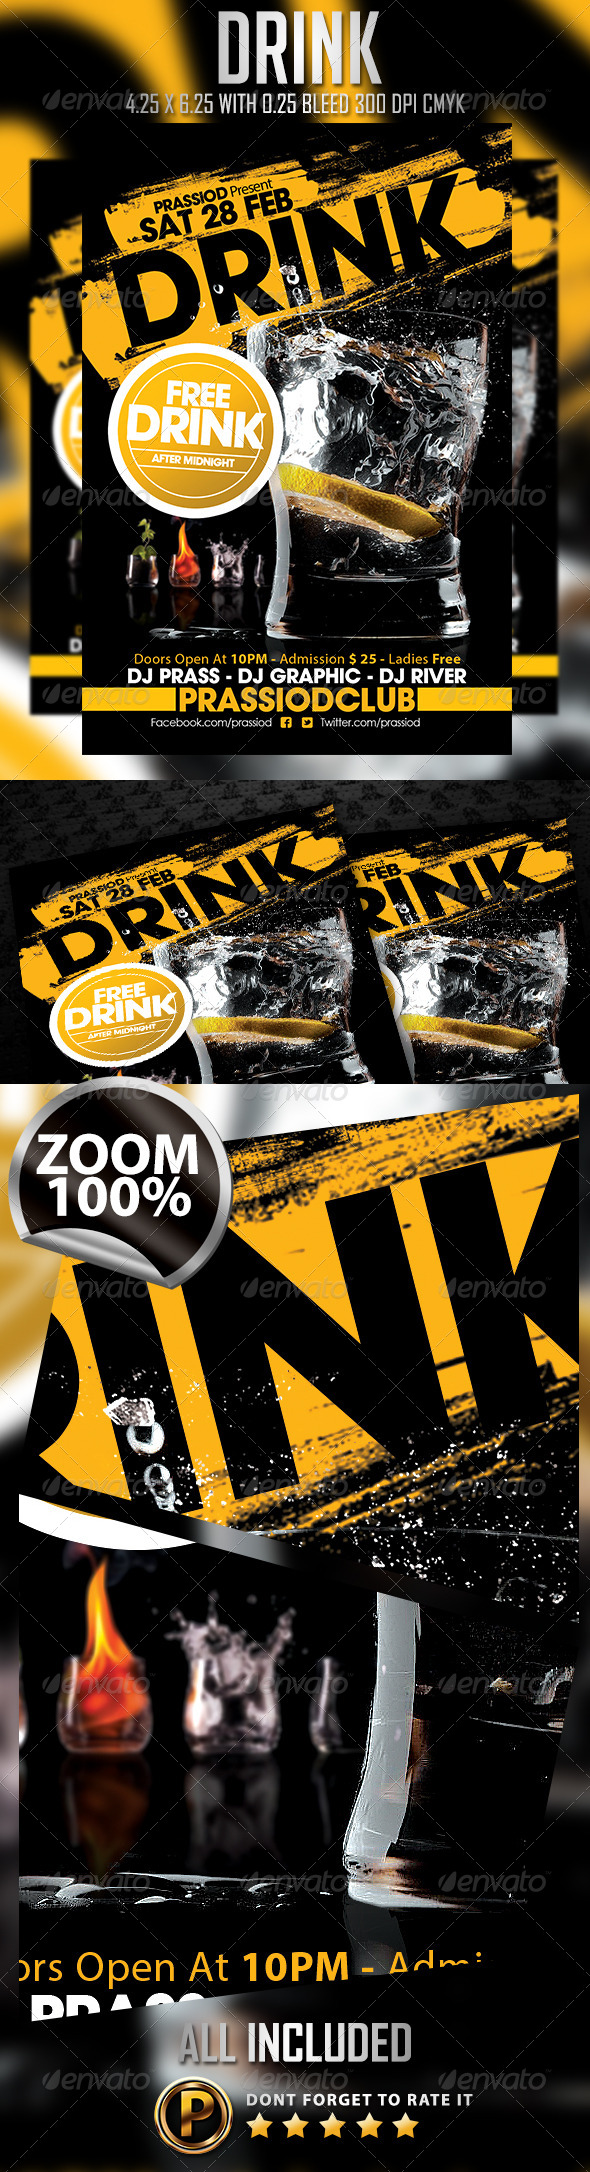 Drink Flyer Template - Clubs & Parties Events